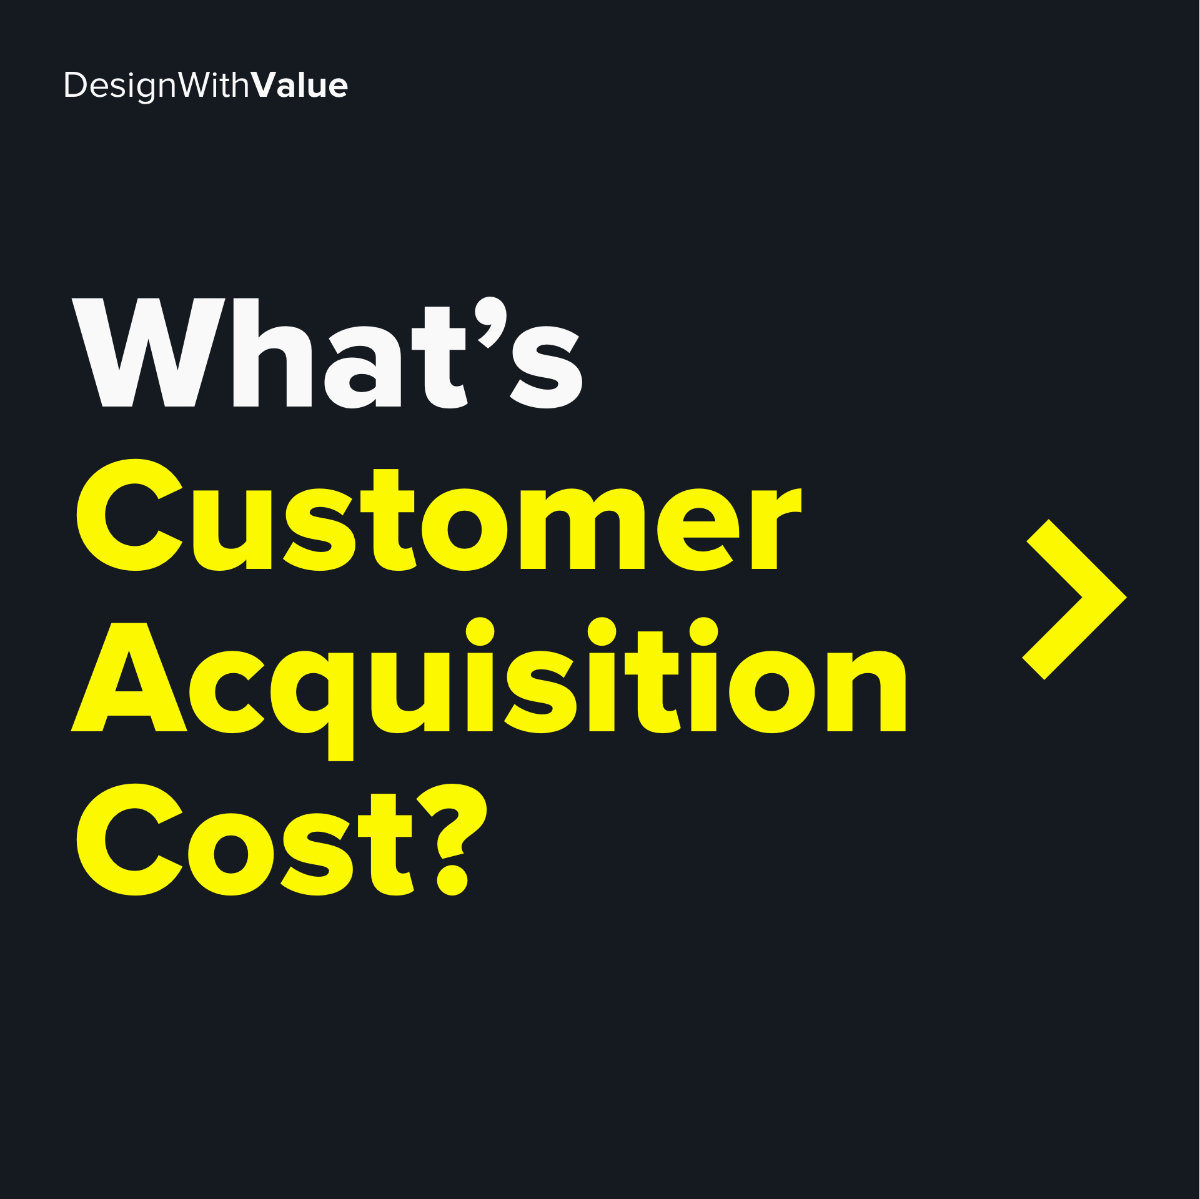 What's customer acquisition cost?